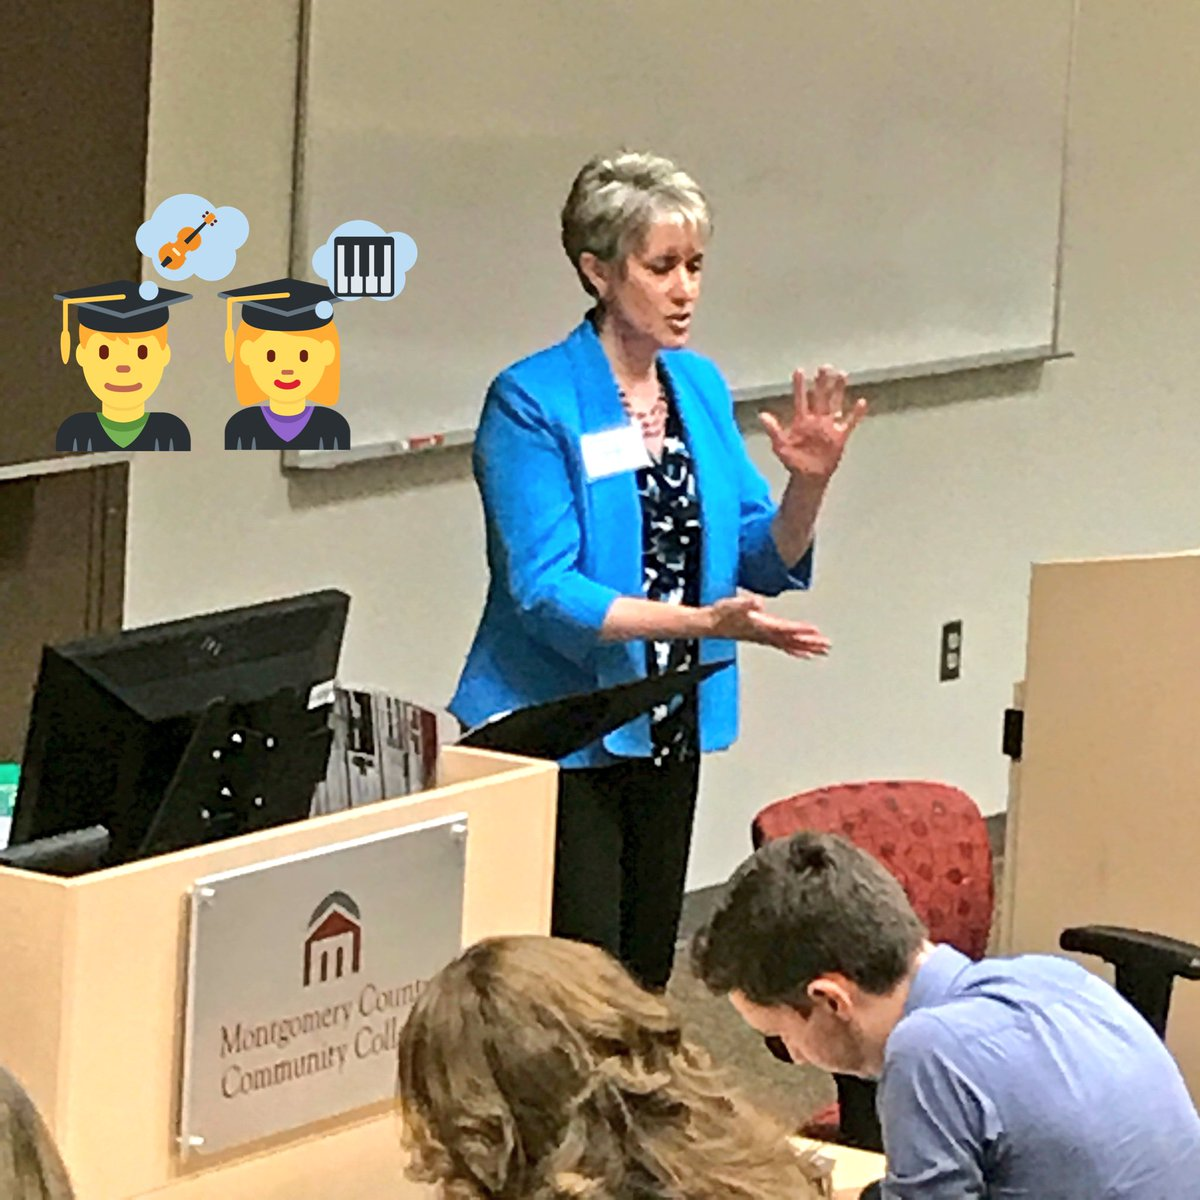 """#tbt to Sharon Saul of @Methacton SD telling music educators how to use the """"H.O.T.S.S.E.A.T."""" aka Higher Order Thinking Skills: Students Engaged in Advanced Thinking at @PMEAD11 / @PMEAstate D11 inservice #musiced <br>http://pic.twitter.com/GRnh40GDkv &ndash; à Montgomery County Community College"""